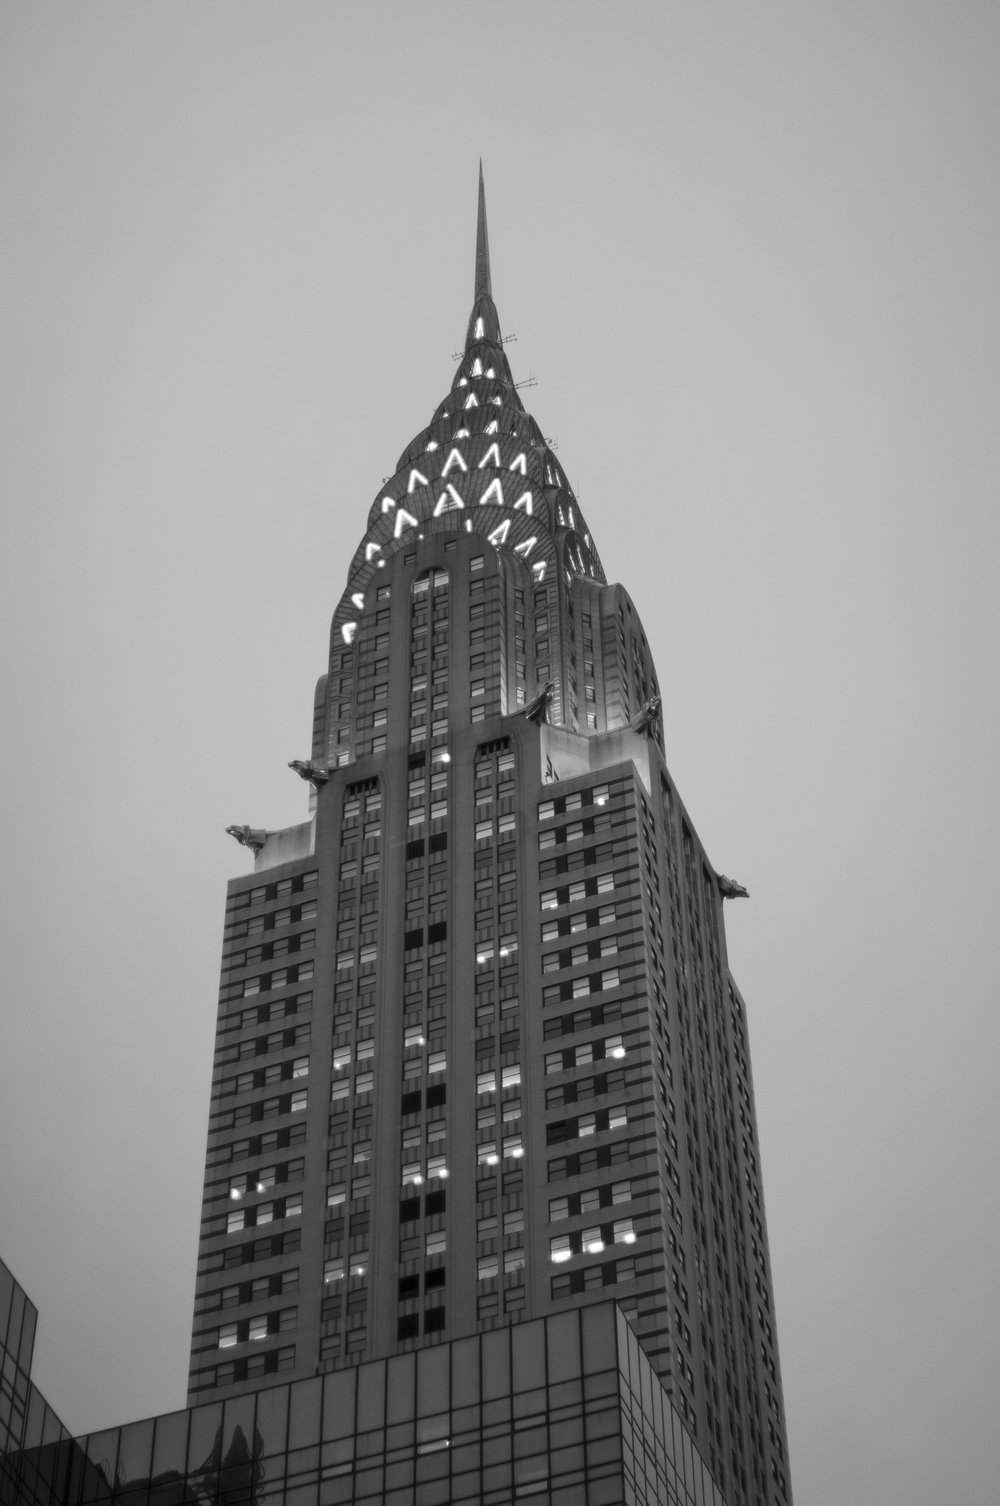 Day 39 - The Chrysler Building